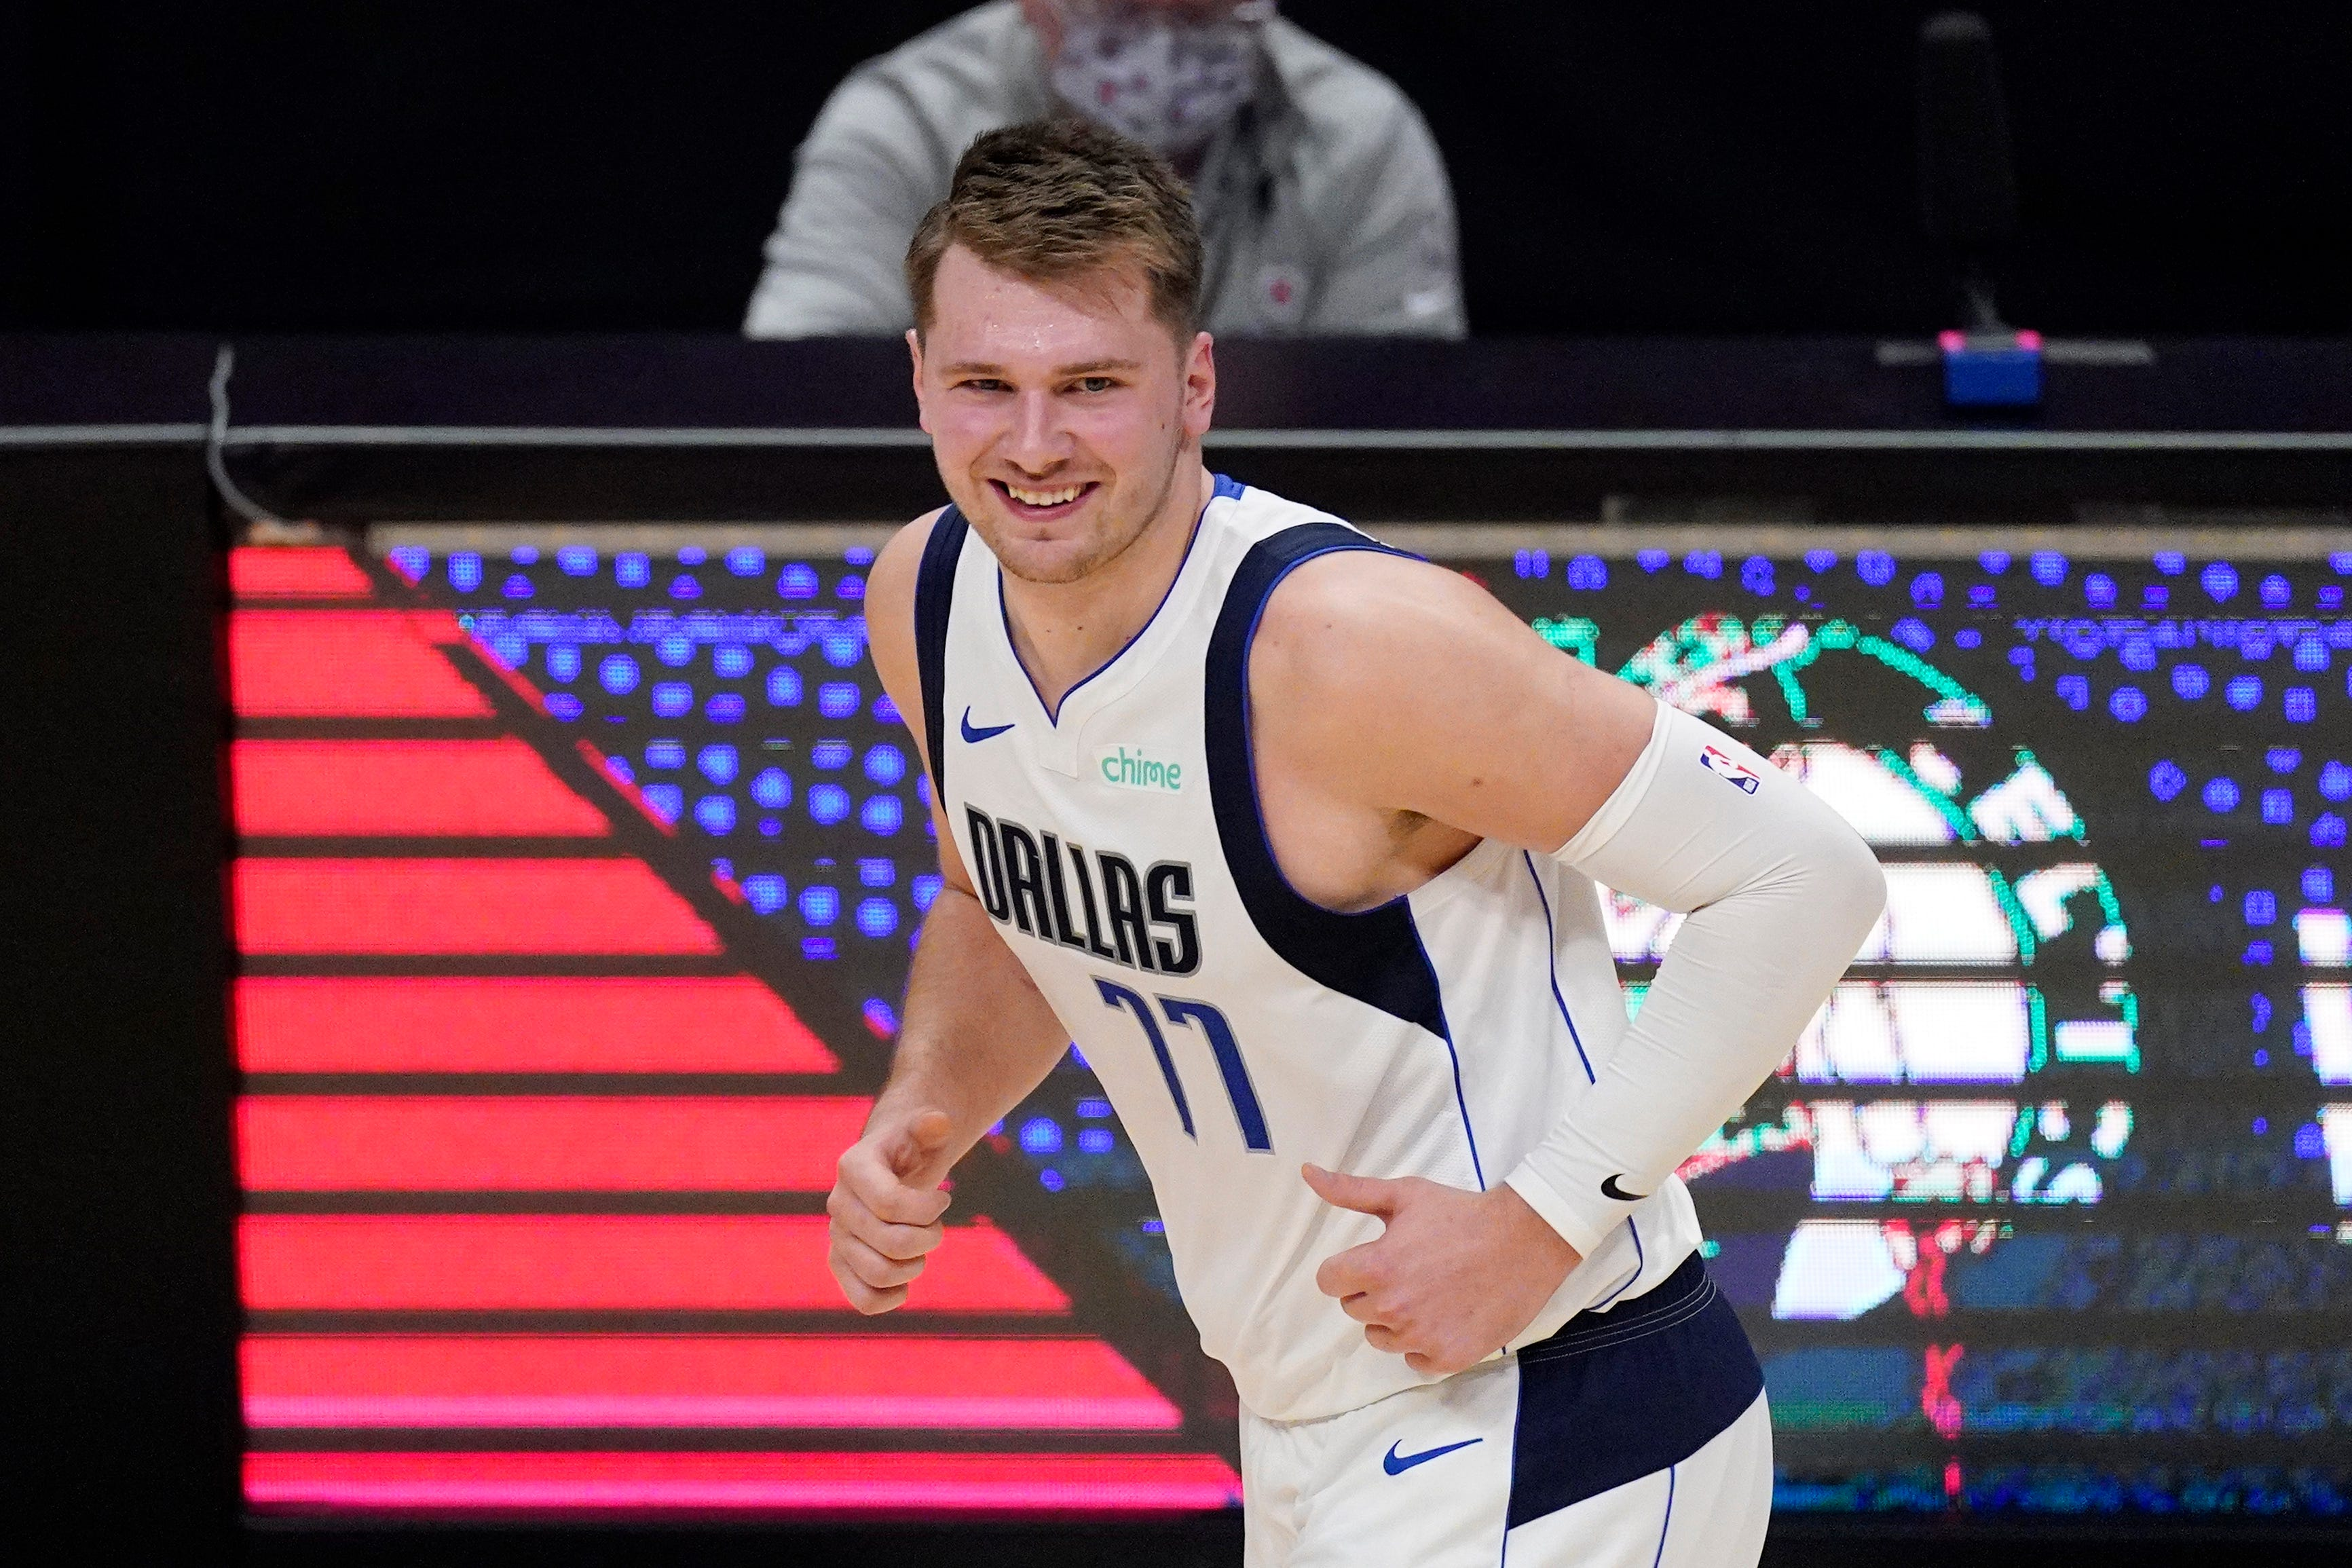 Mavericks coach Rick Carlisle on Luka Doncic s Game 1 play vs. Clippers:  This is his time of year